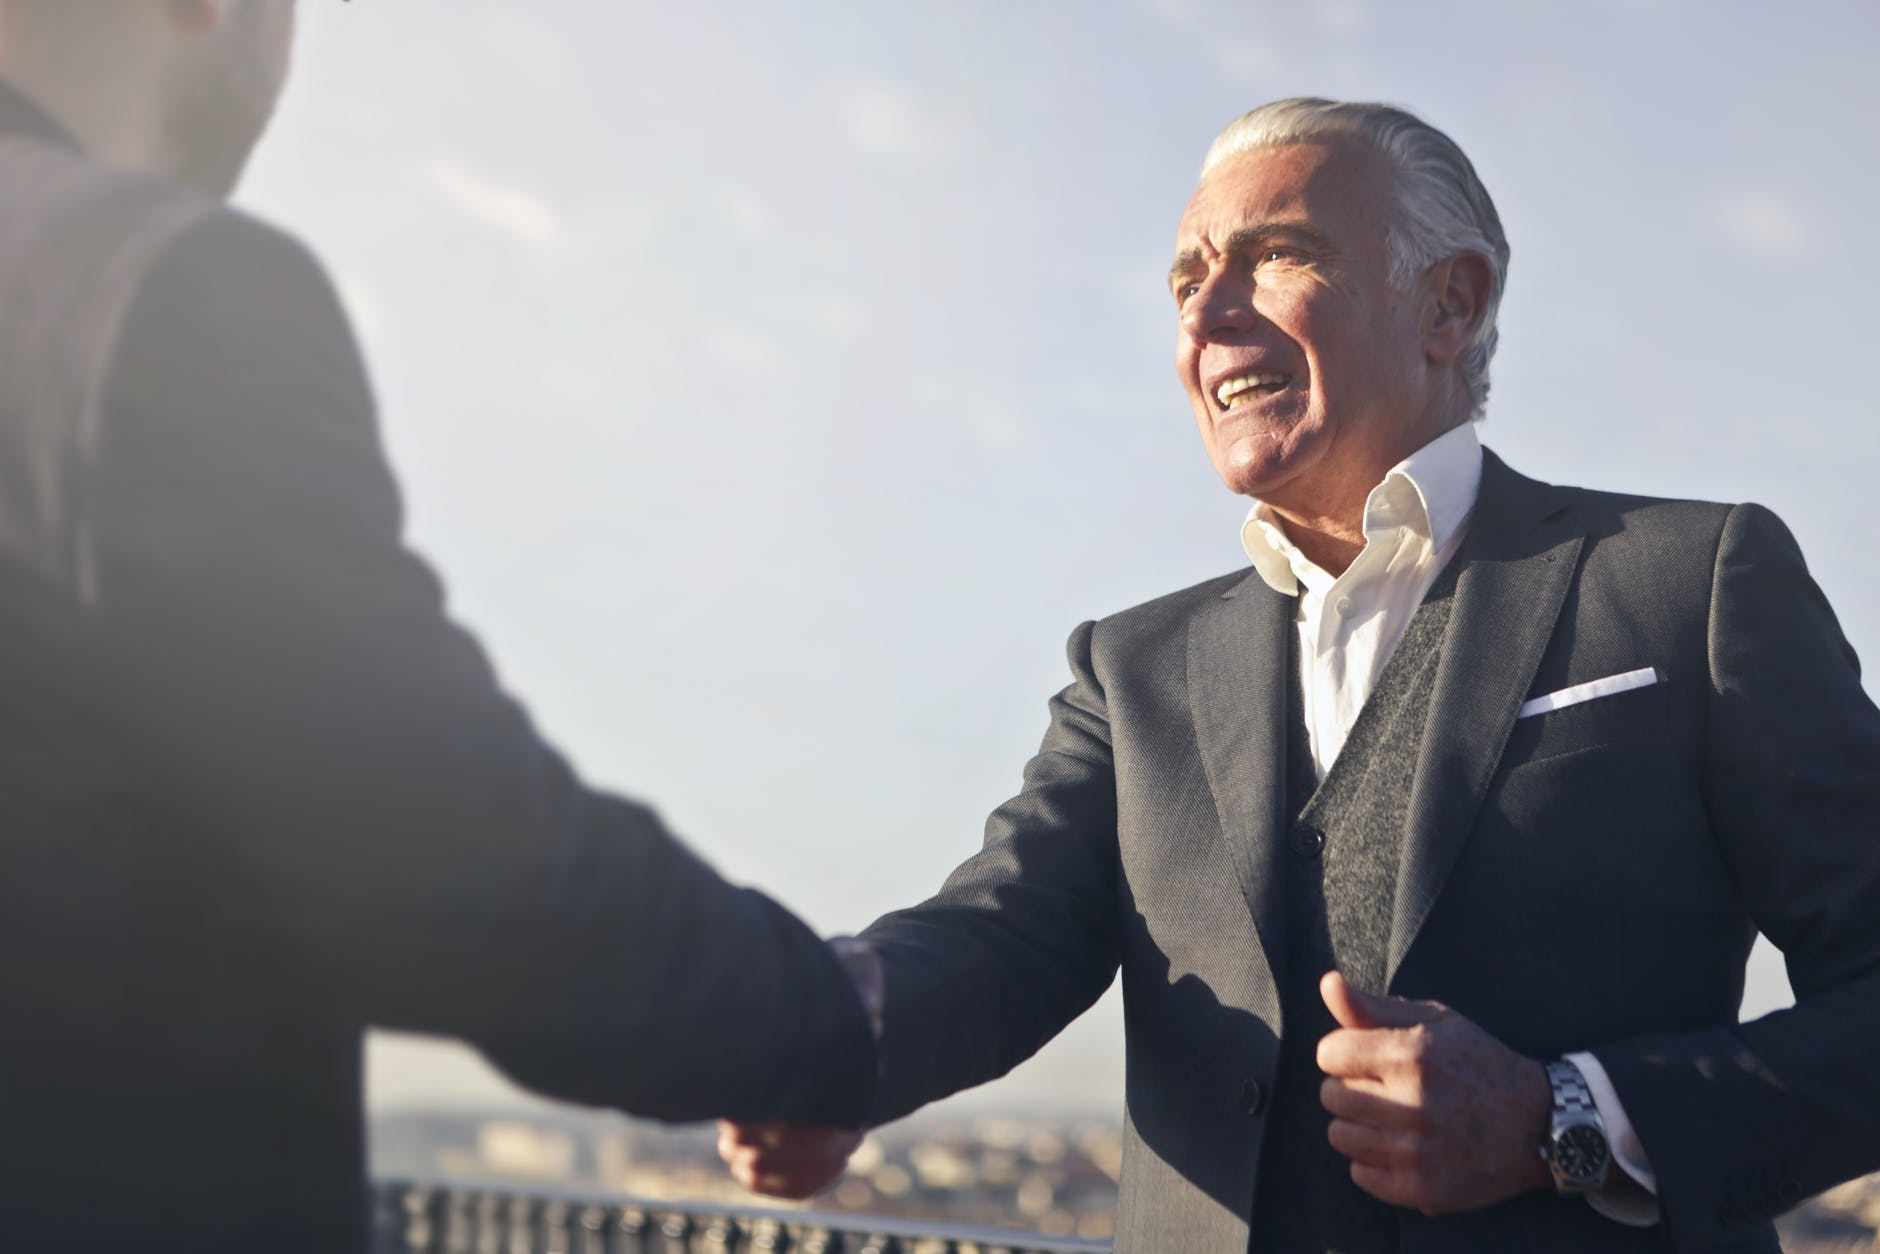 man in black suit shaking hands with another man